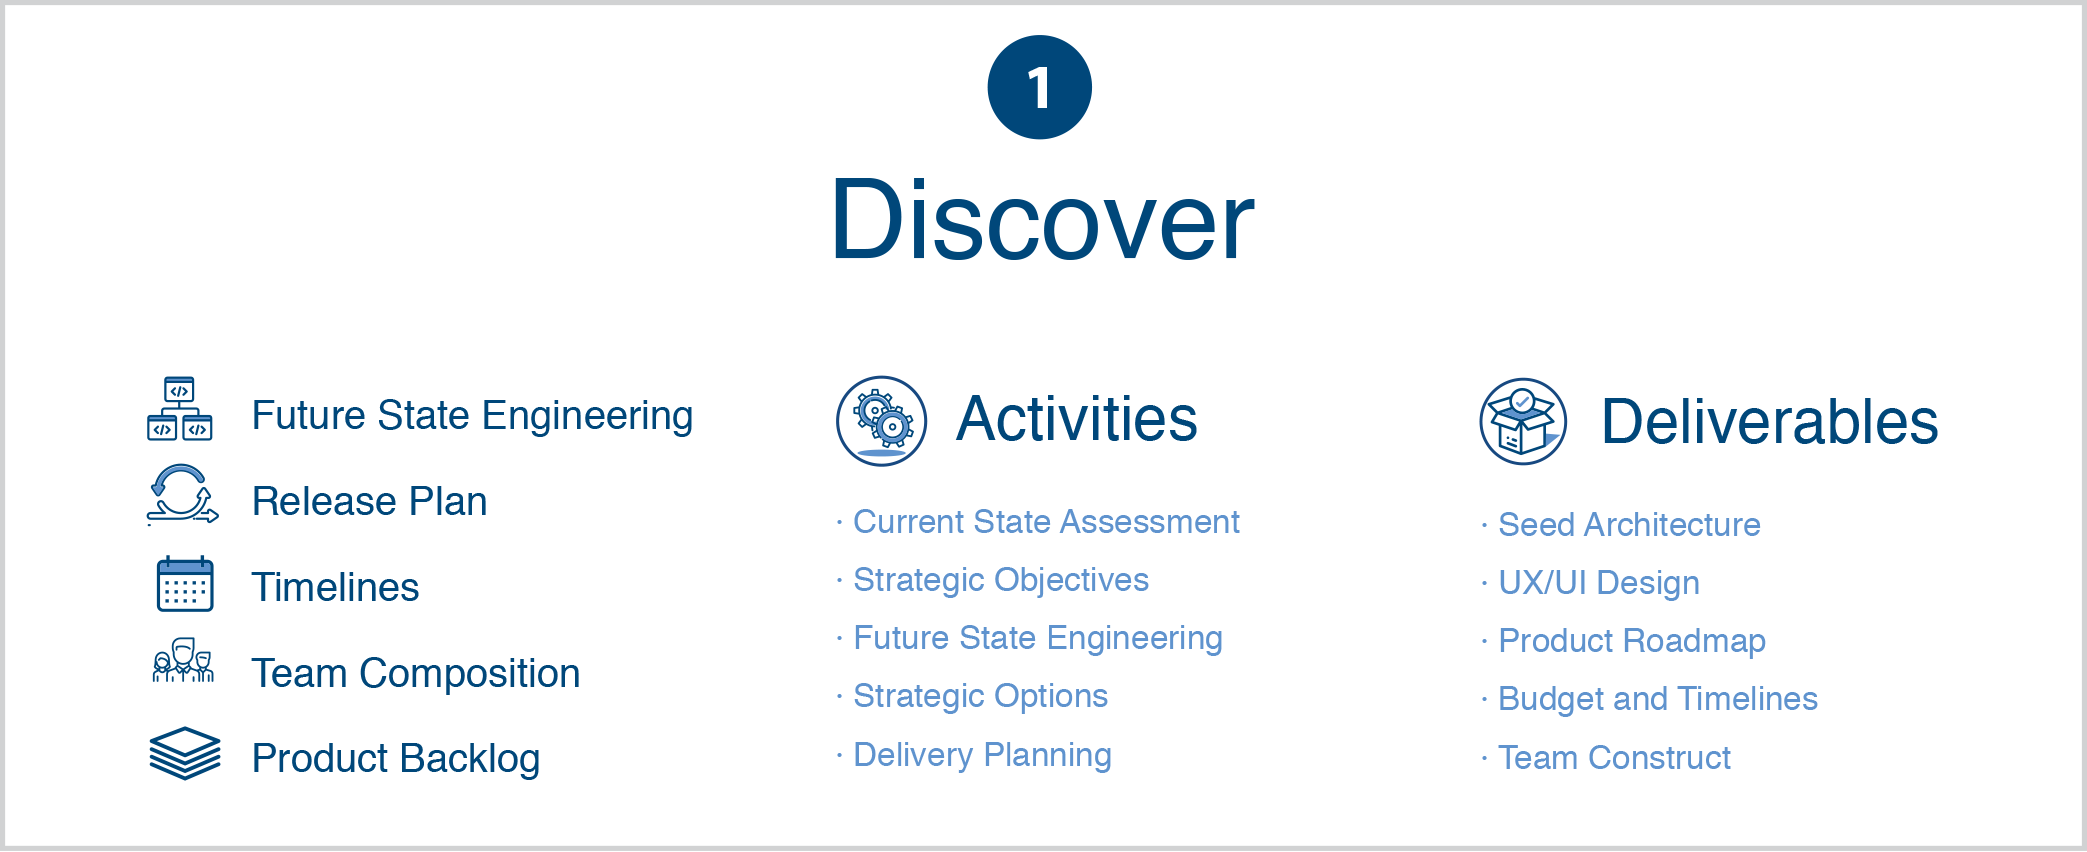 The Intelliware Discover Approach